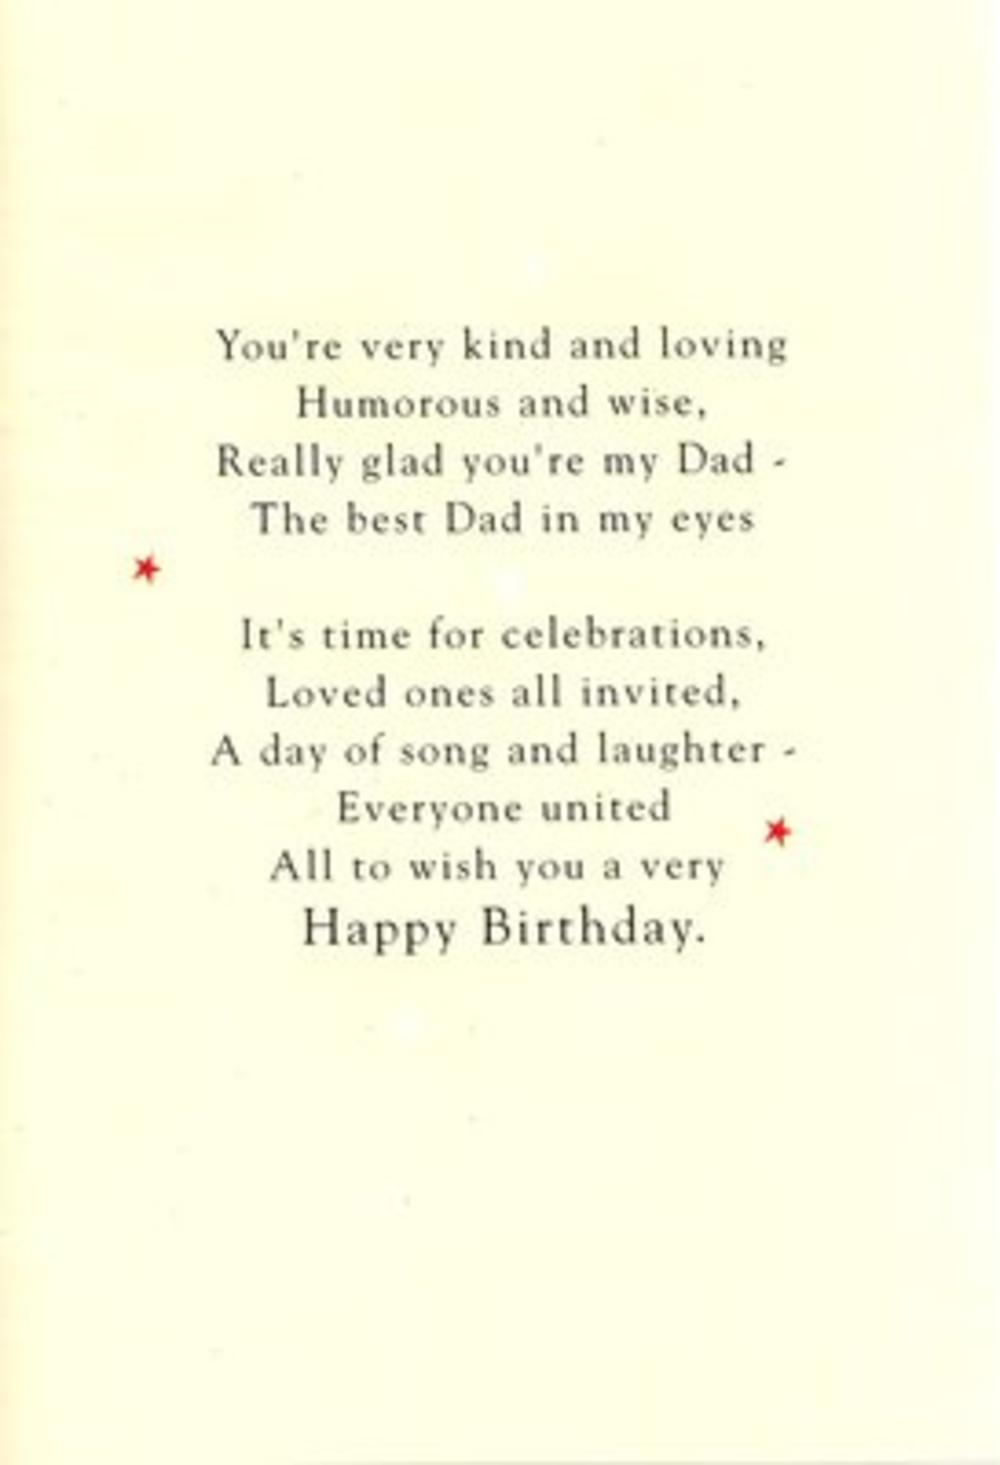 happy birthday letter to dad in spanish birthday poetry in motion card cards kates 18433